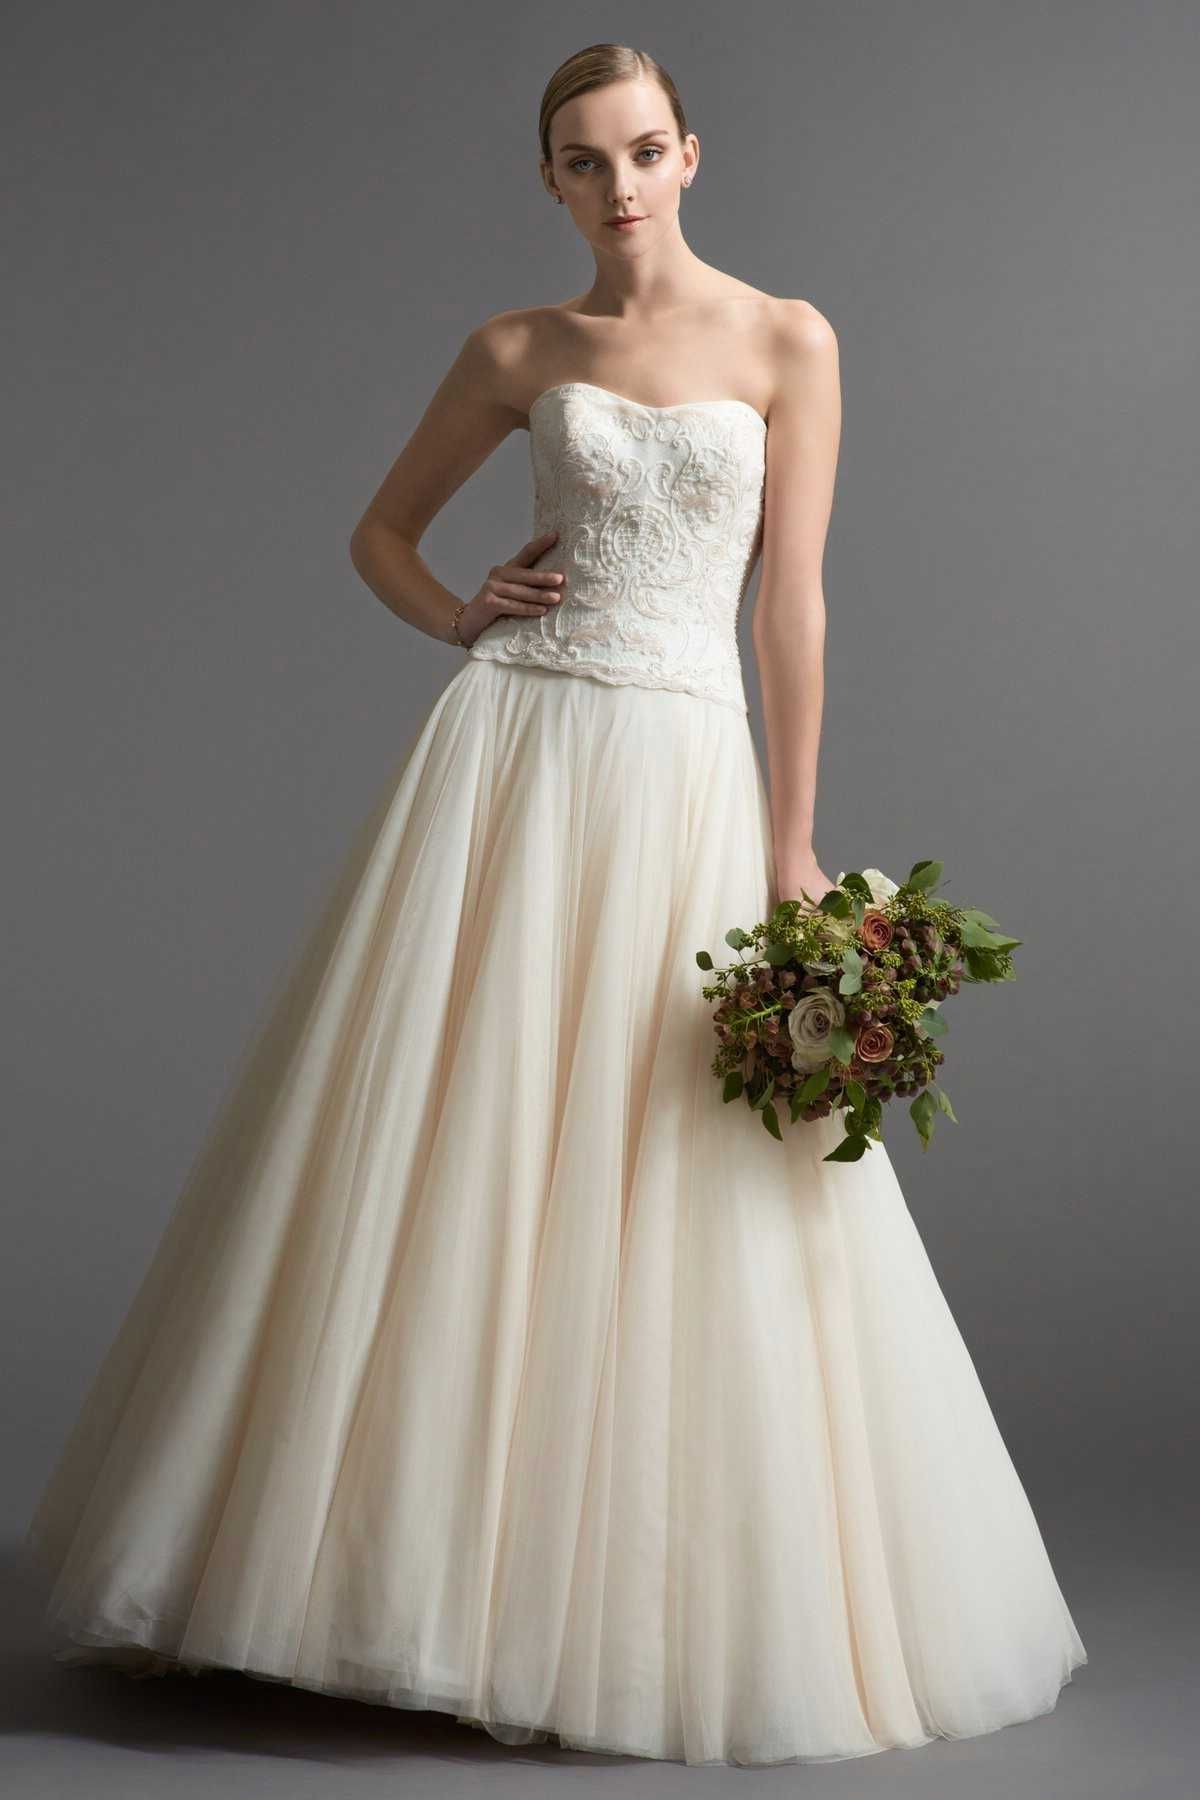 Watters wedding dresses style guilia b watercolor wall